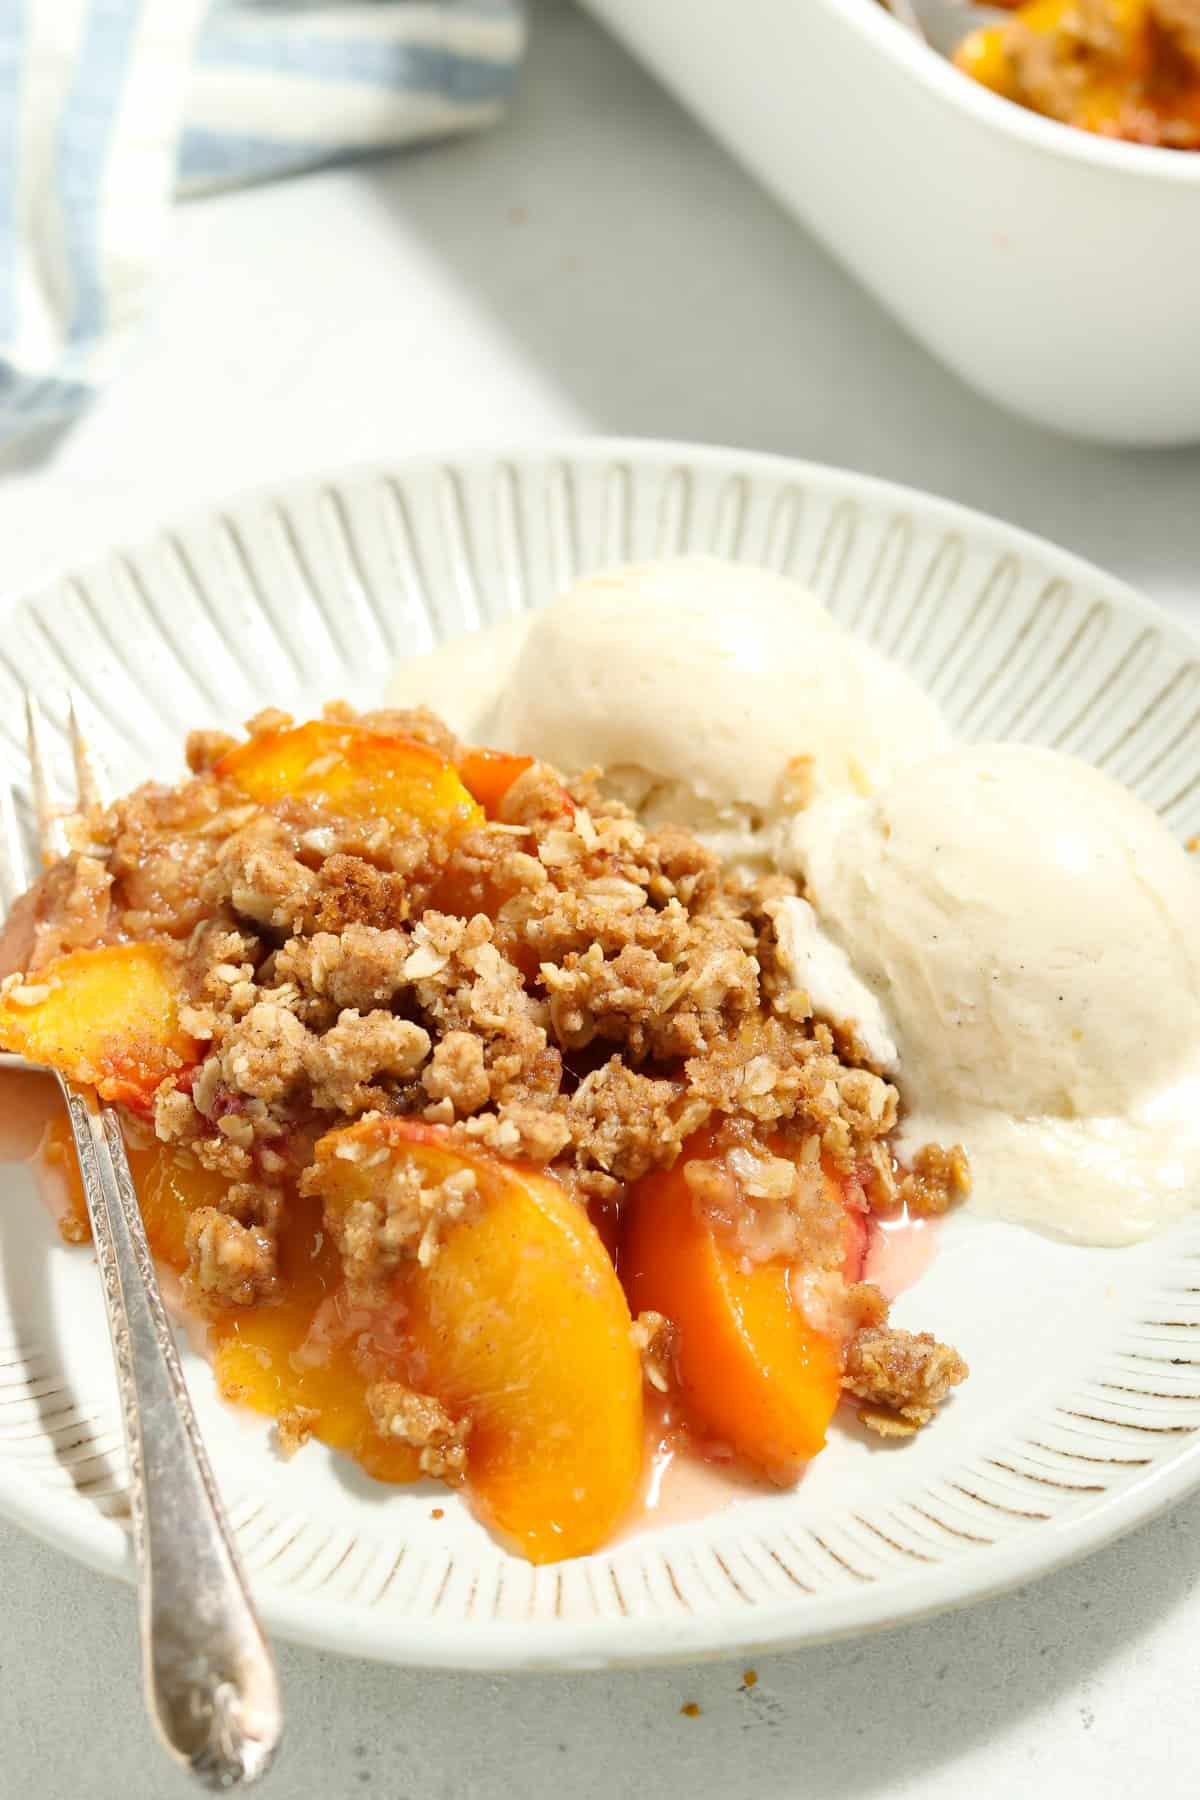 Close up view of peaches and ice cream on a white plate.